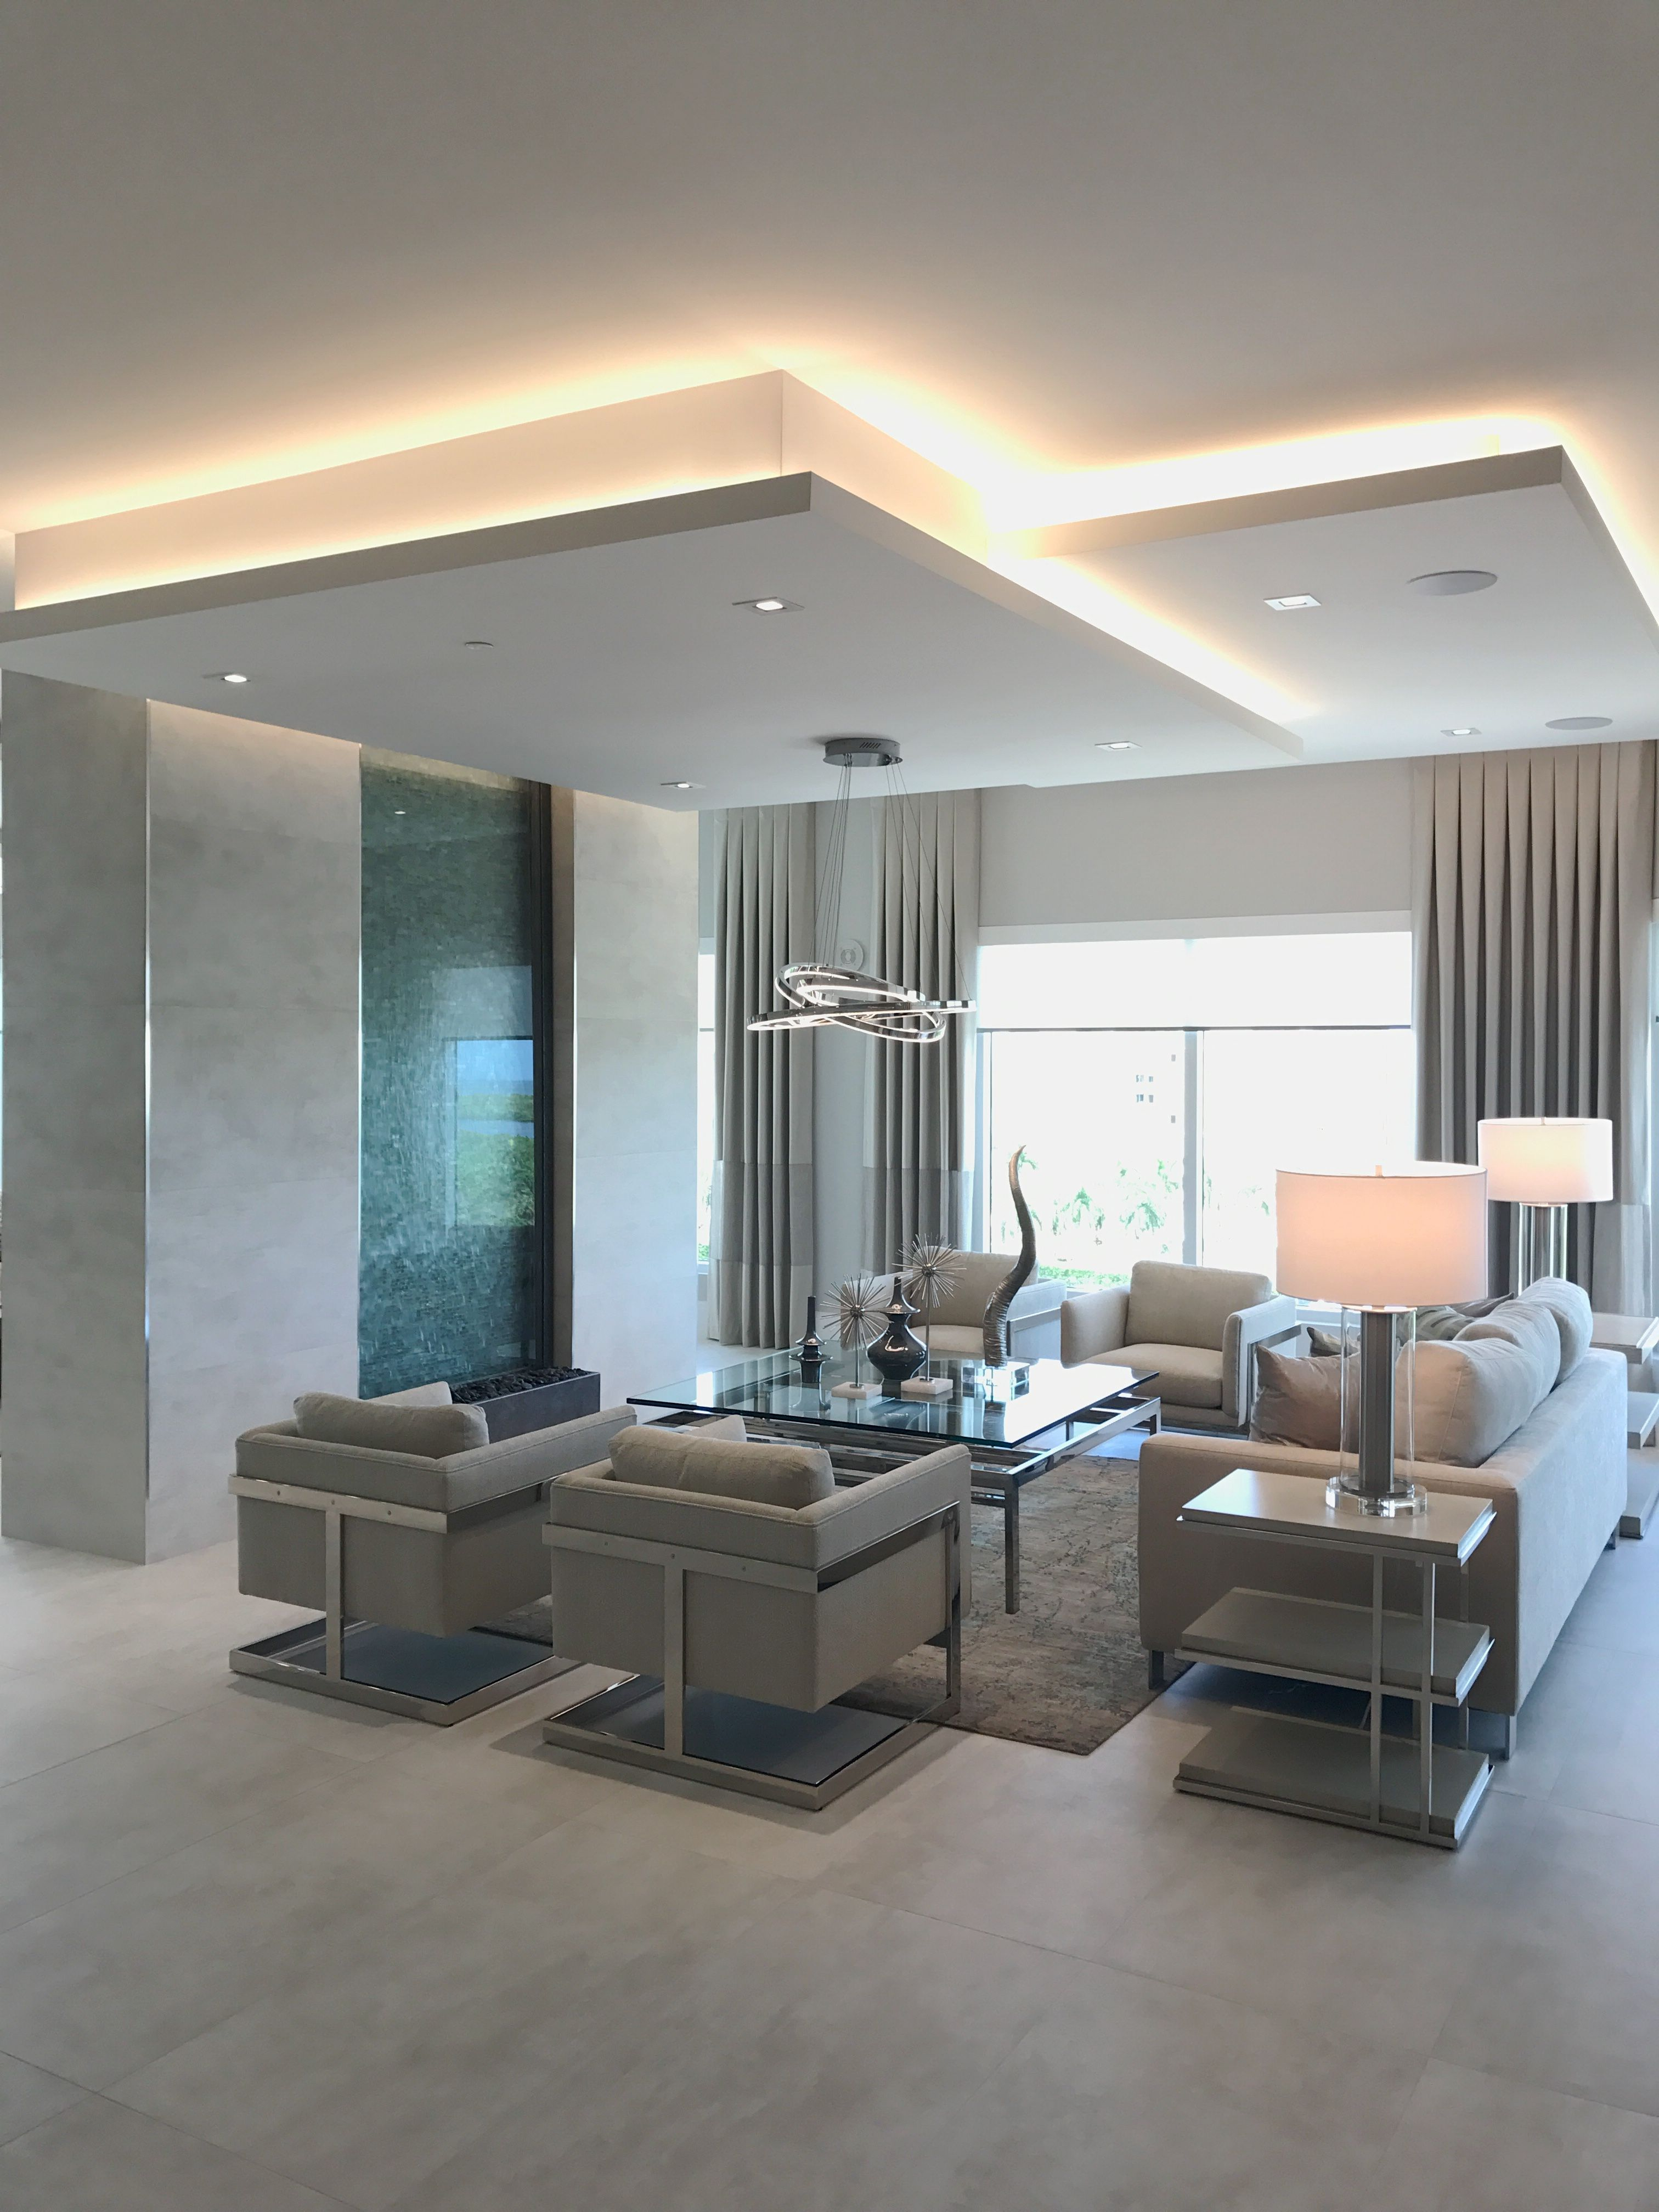 Pin by Laurie Walter on Ceilings  Ceiling design living